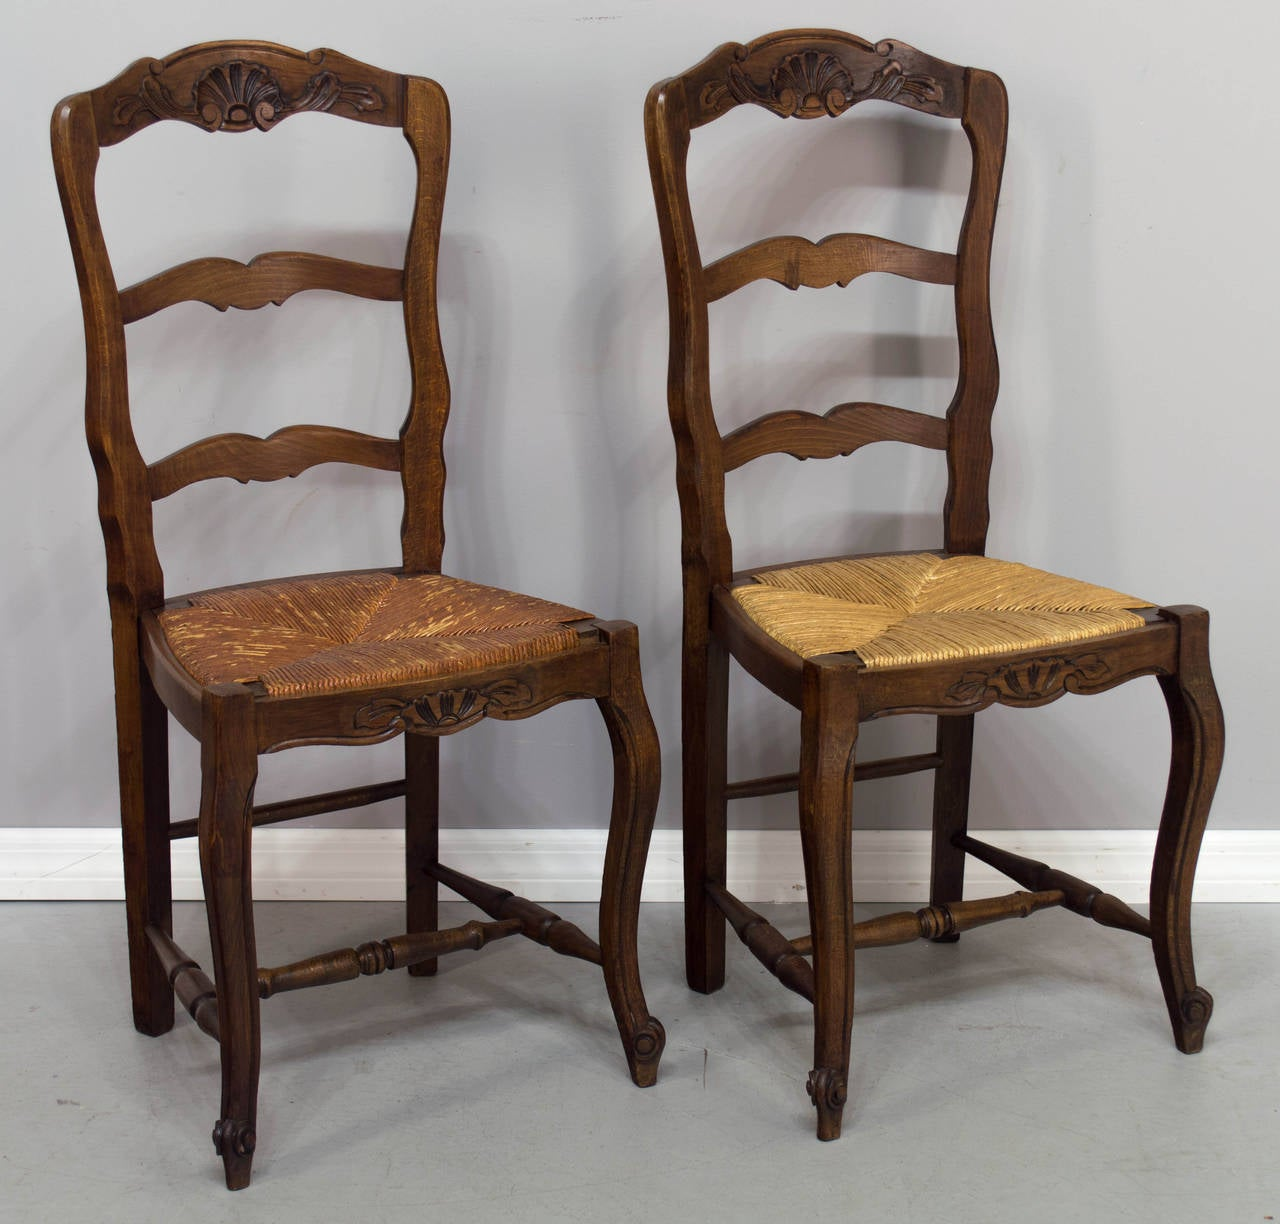 rush seat chairs bungee cord chair target set of six french country at 1stdibs